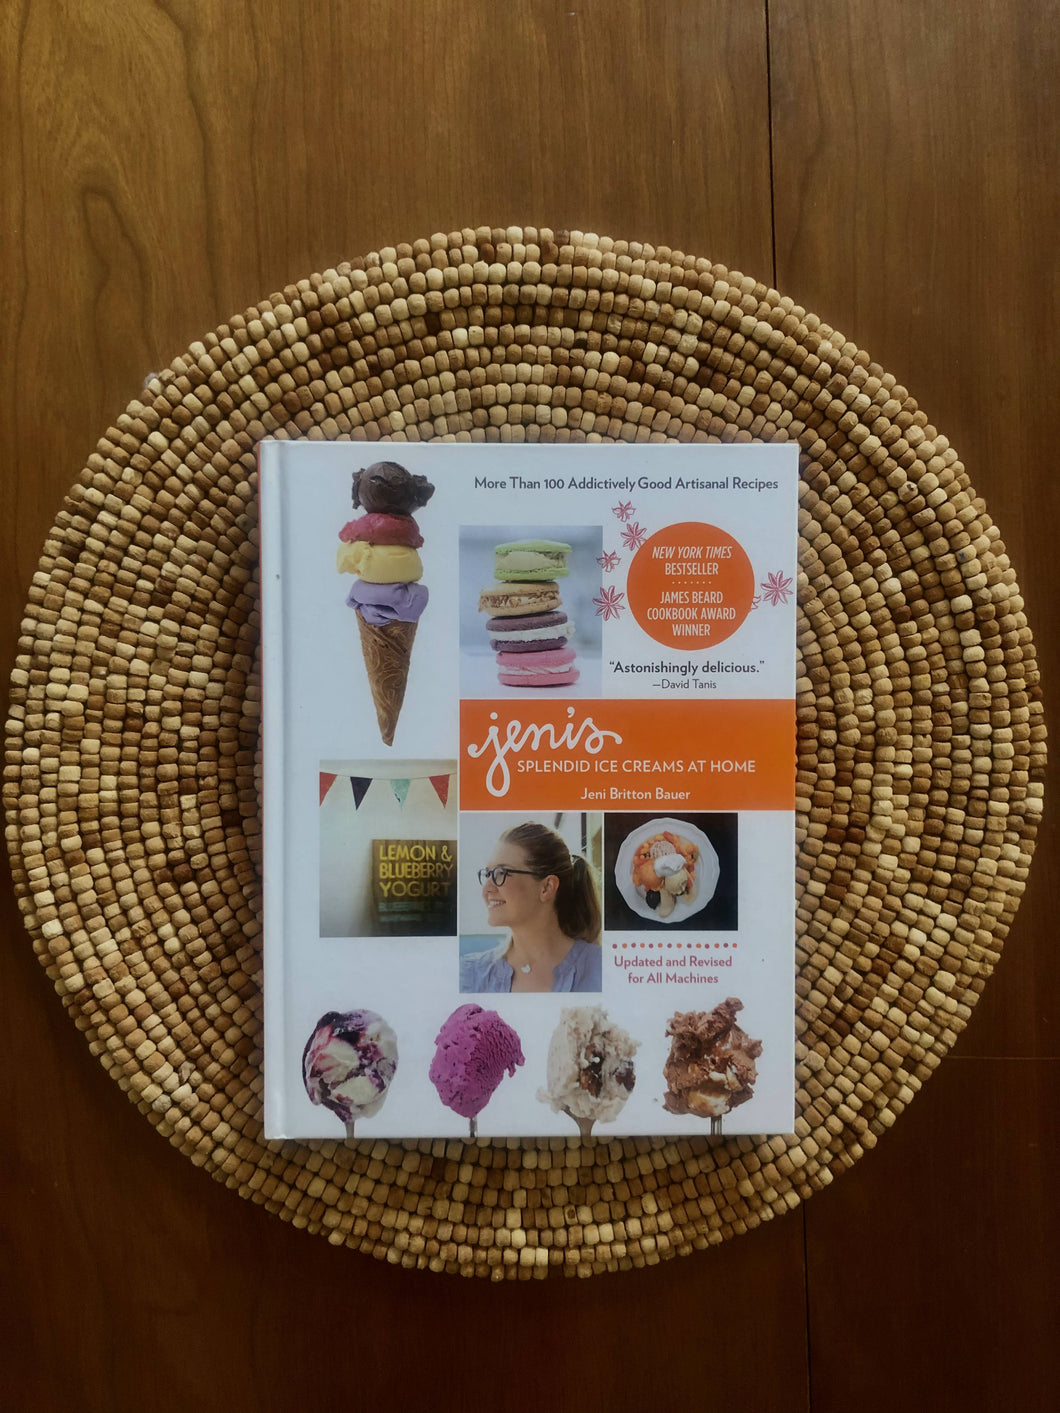 Jeni's Splendid Ice Creams at Home by Jeni Britton Bauer